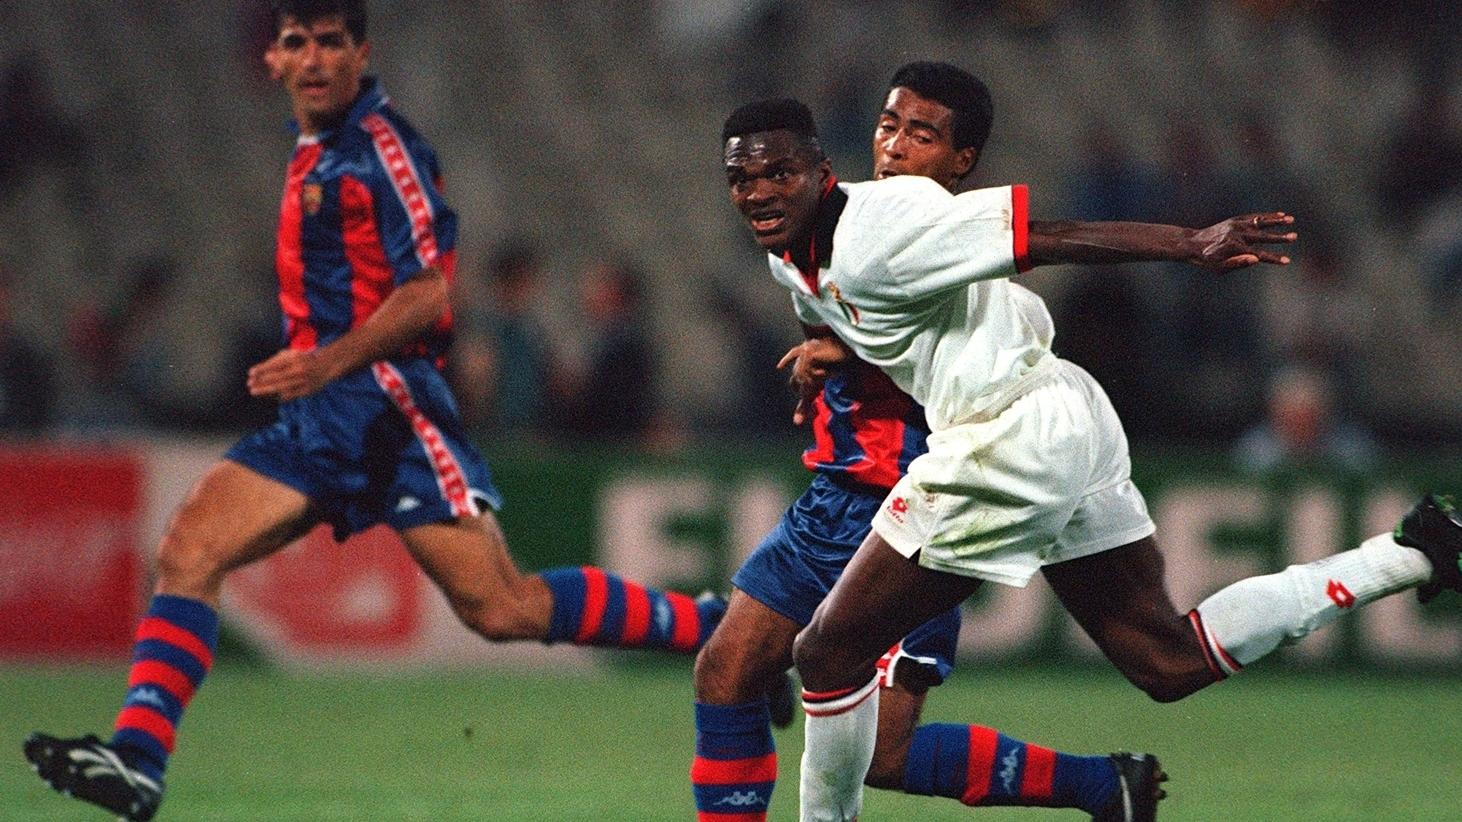 milan_s_marcel_desailly_takes_on_barcelona_s_romario_in_the_1994_uefa_champions_league_final